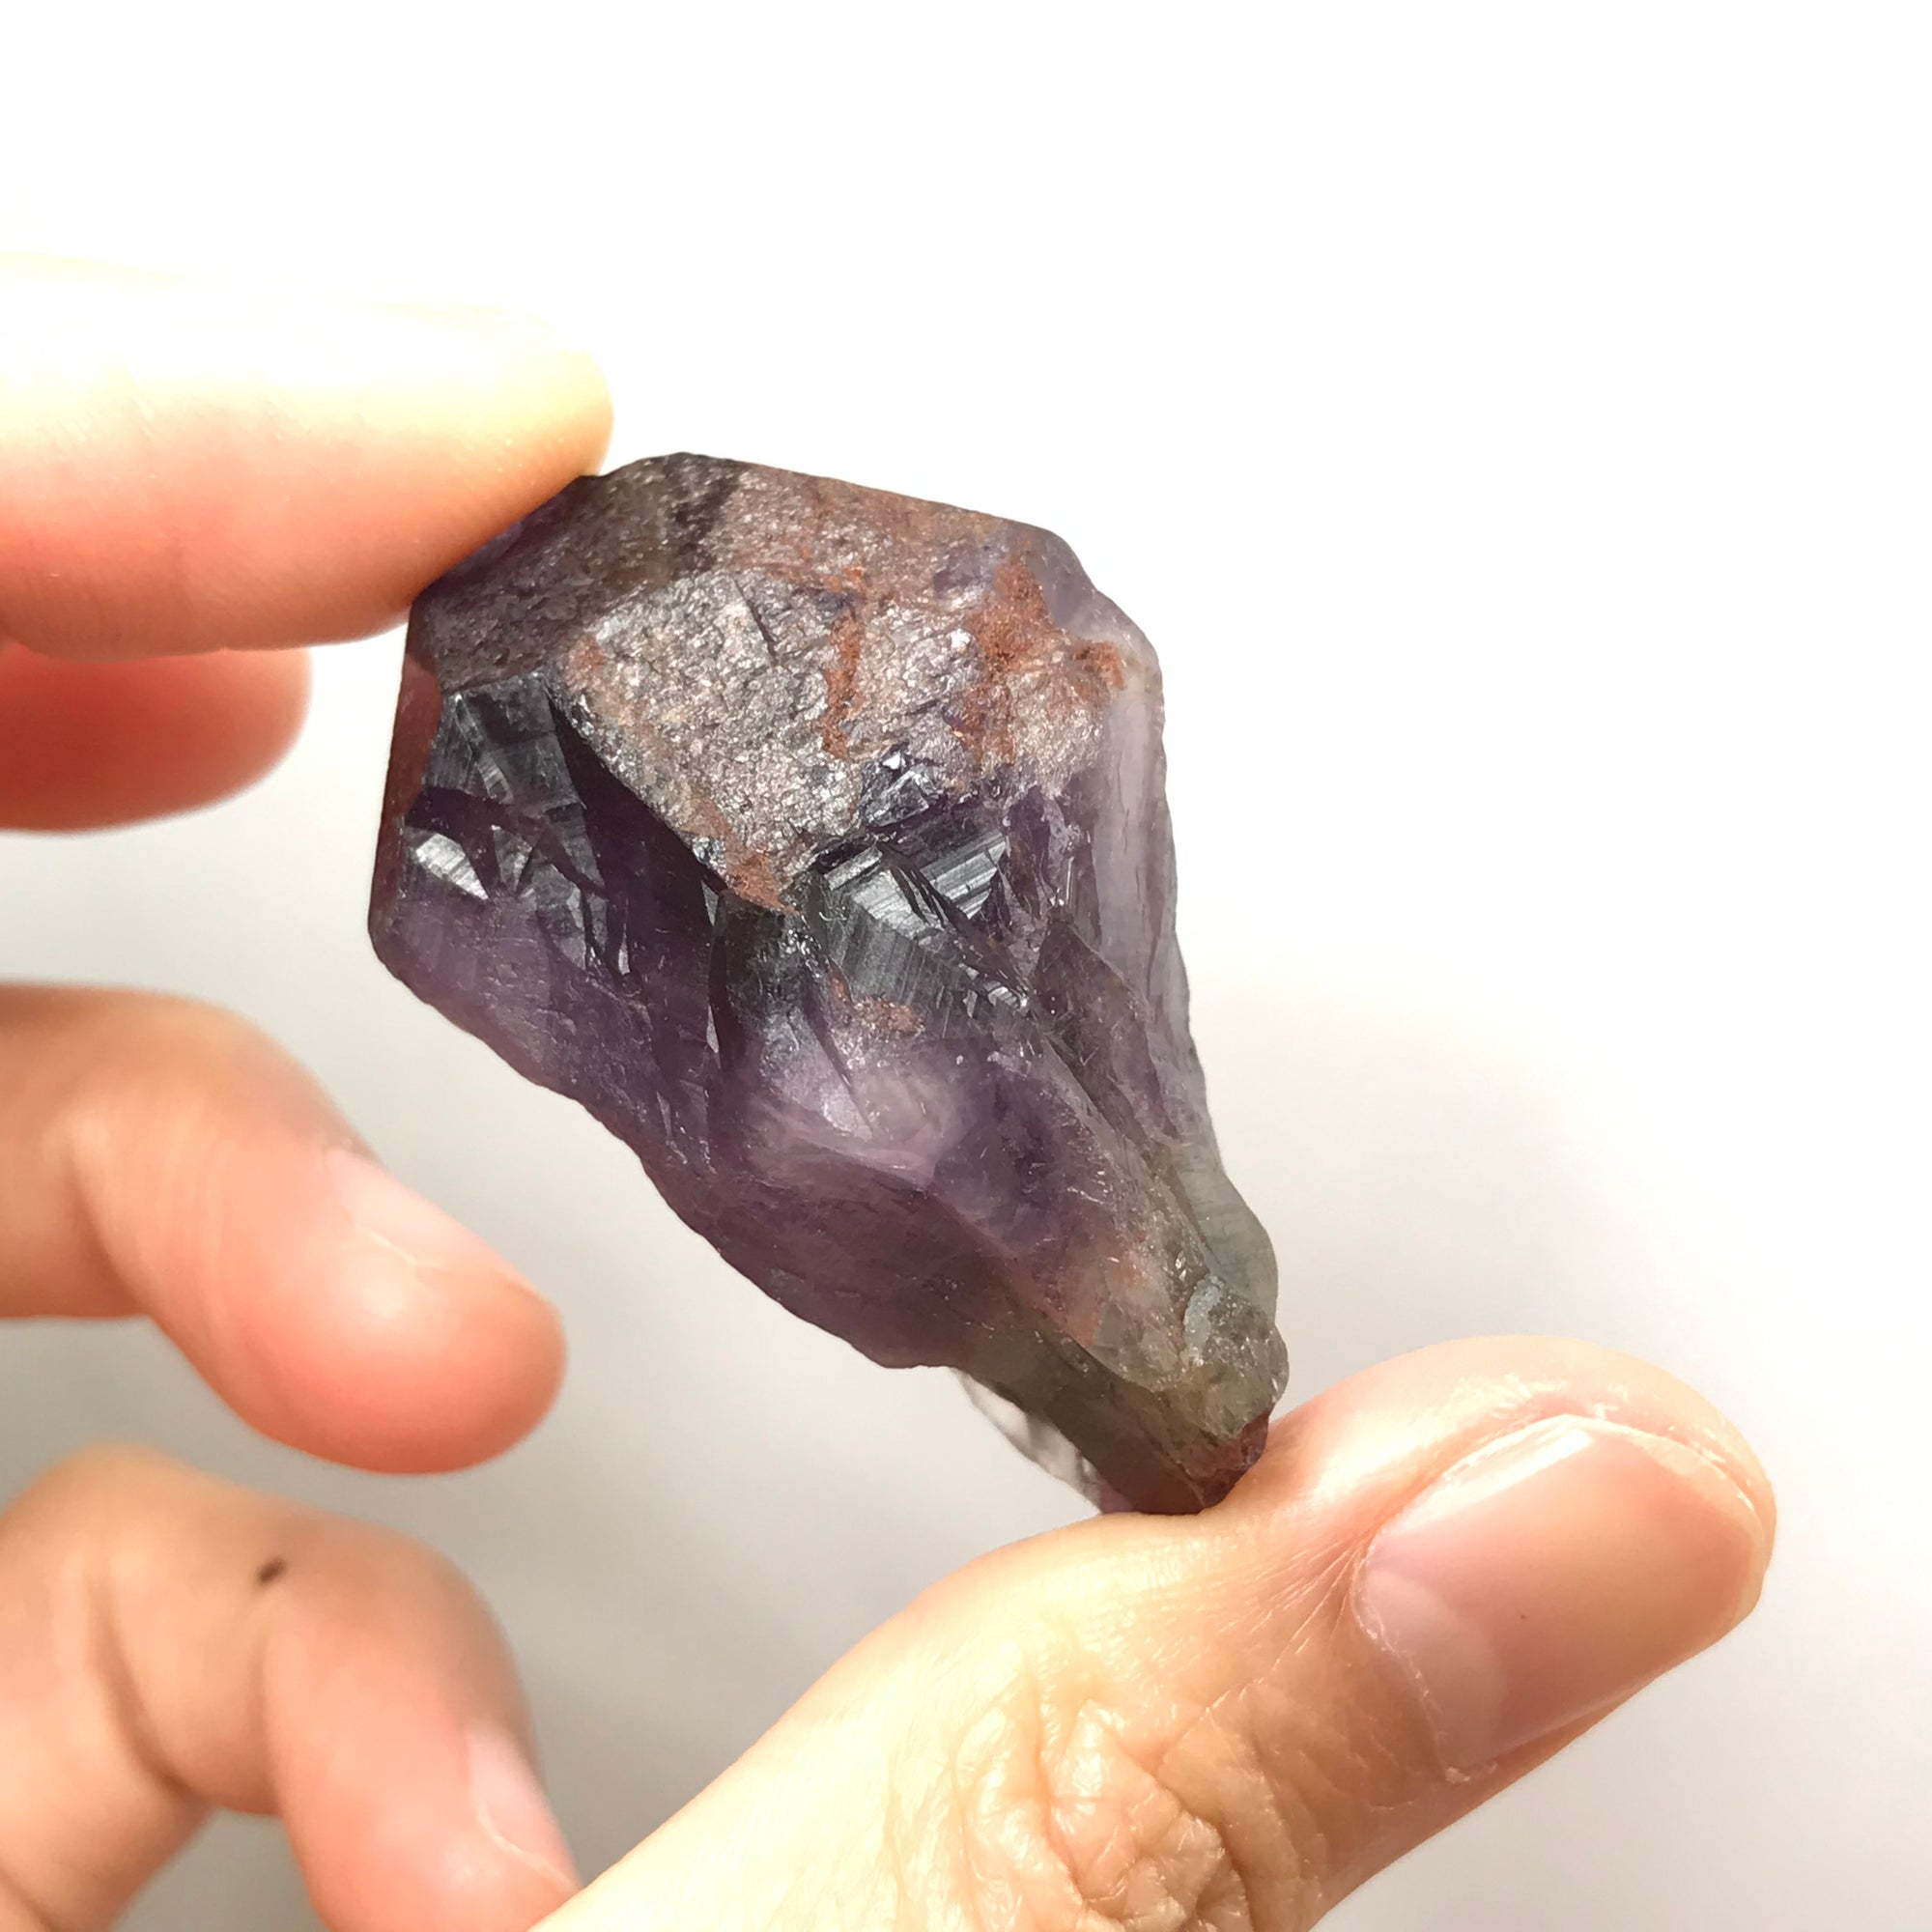 ONLY 1 AVAILABLE - 23.2g Genuine Highest Grade Raw Auralite-23 Crystal | Spiritual Cleansing Healing Tool | Highest Vibration Seeker Transformer Crystal for Powerful Pocket Protection and Healing Chakra Meditation